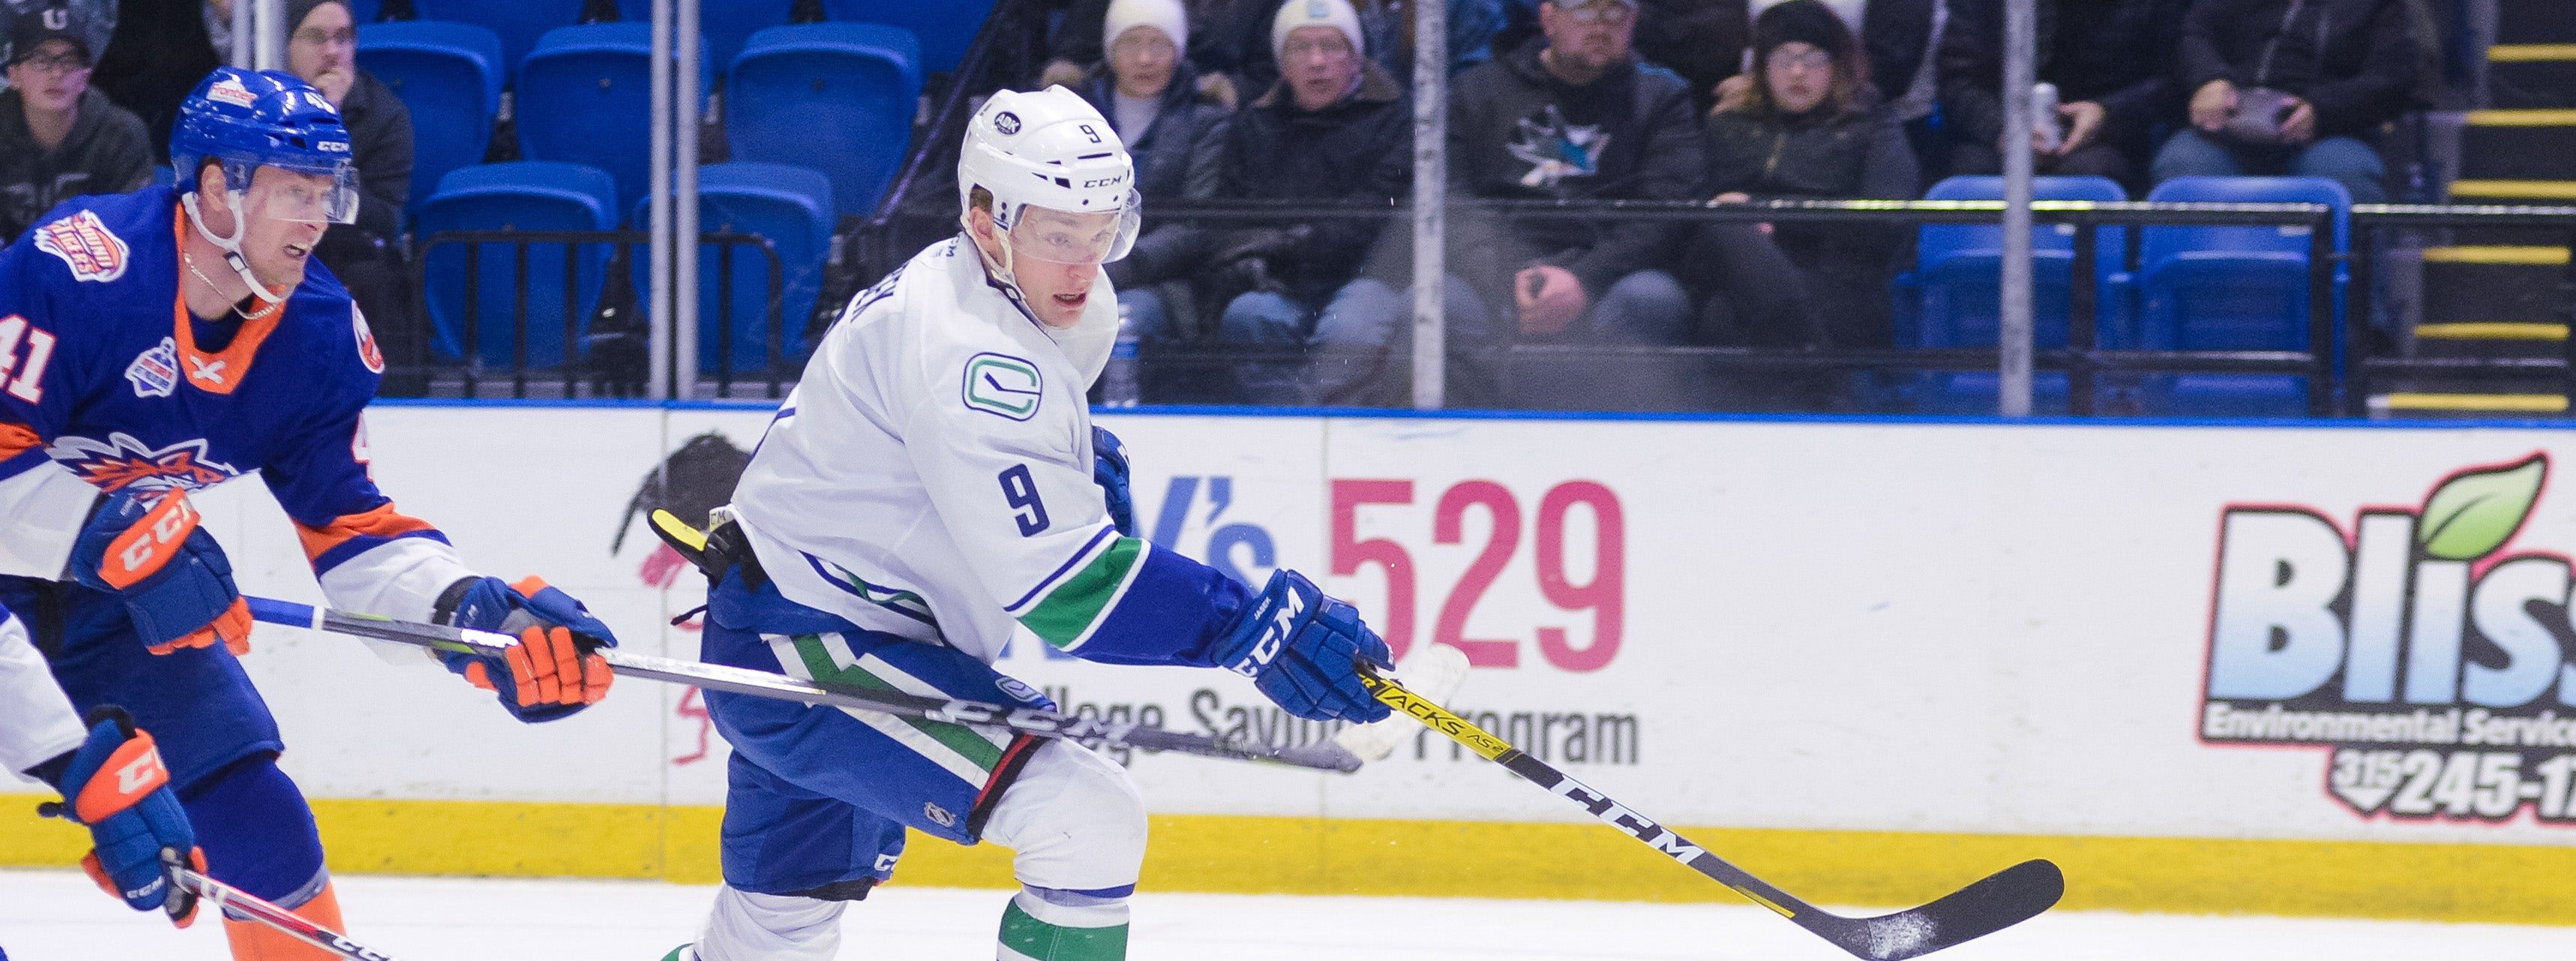 COMETS DROP WILD GAME IN SHOOTOUT